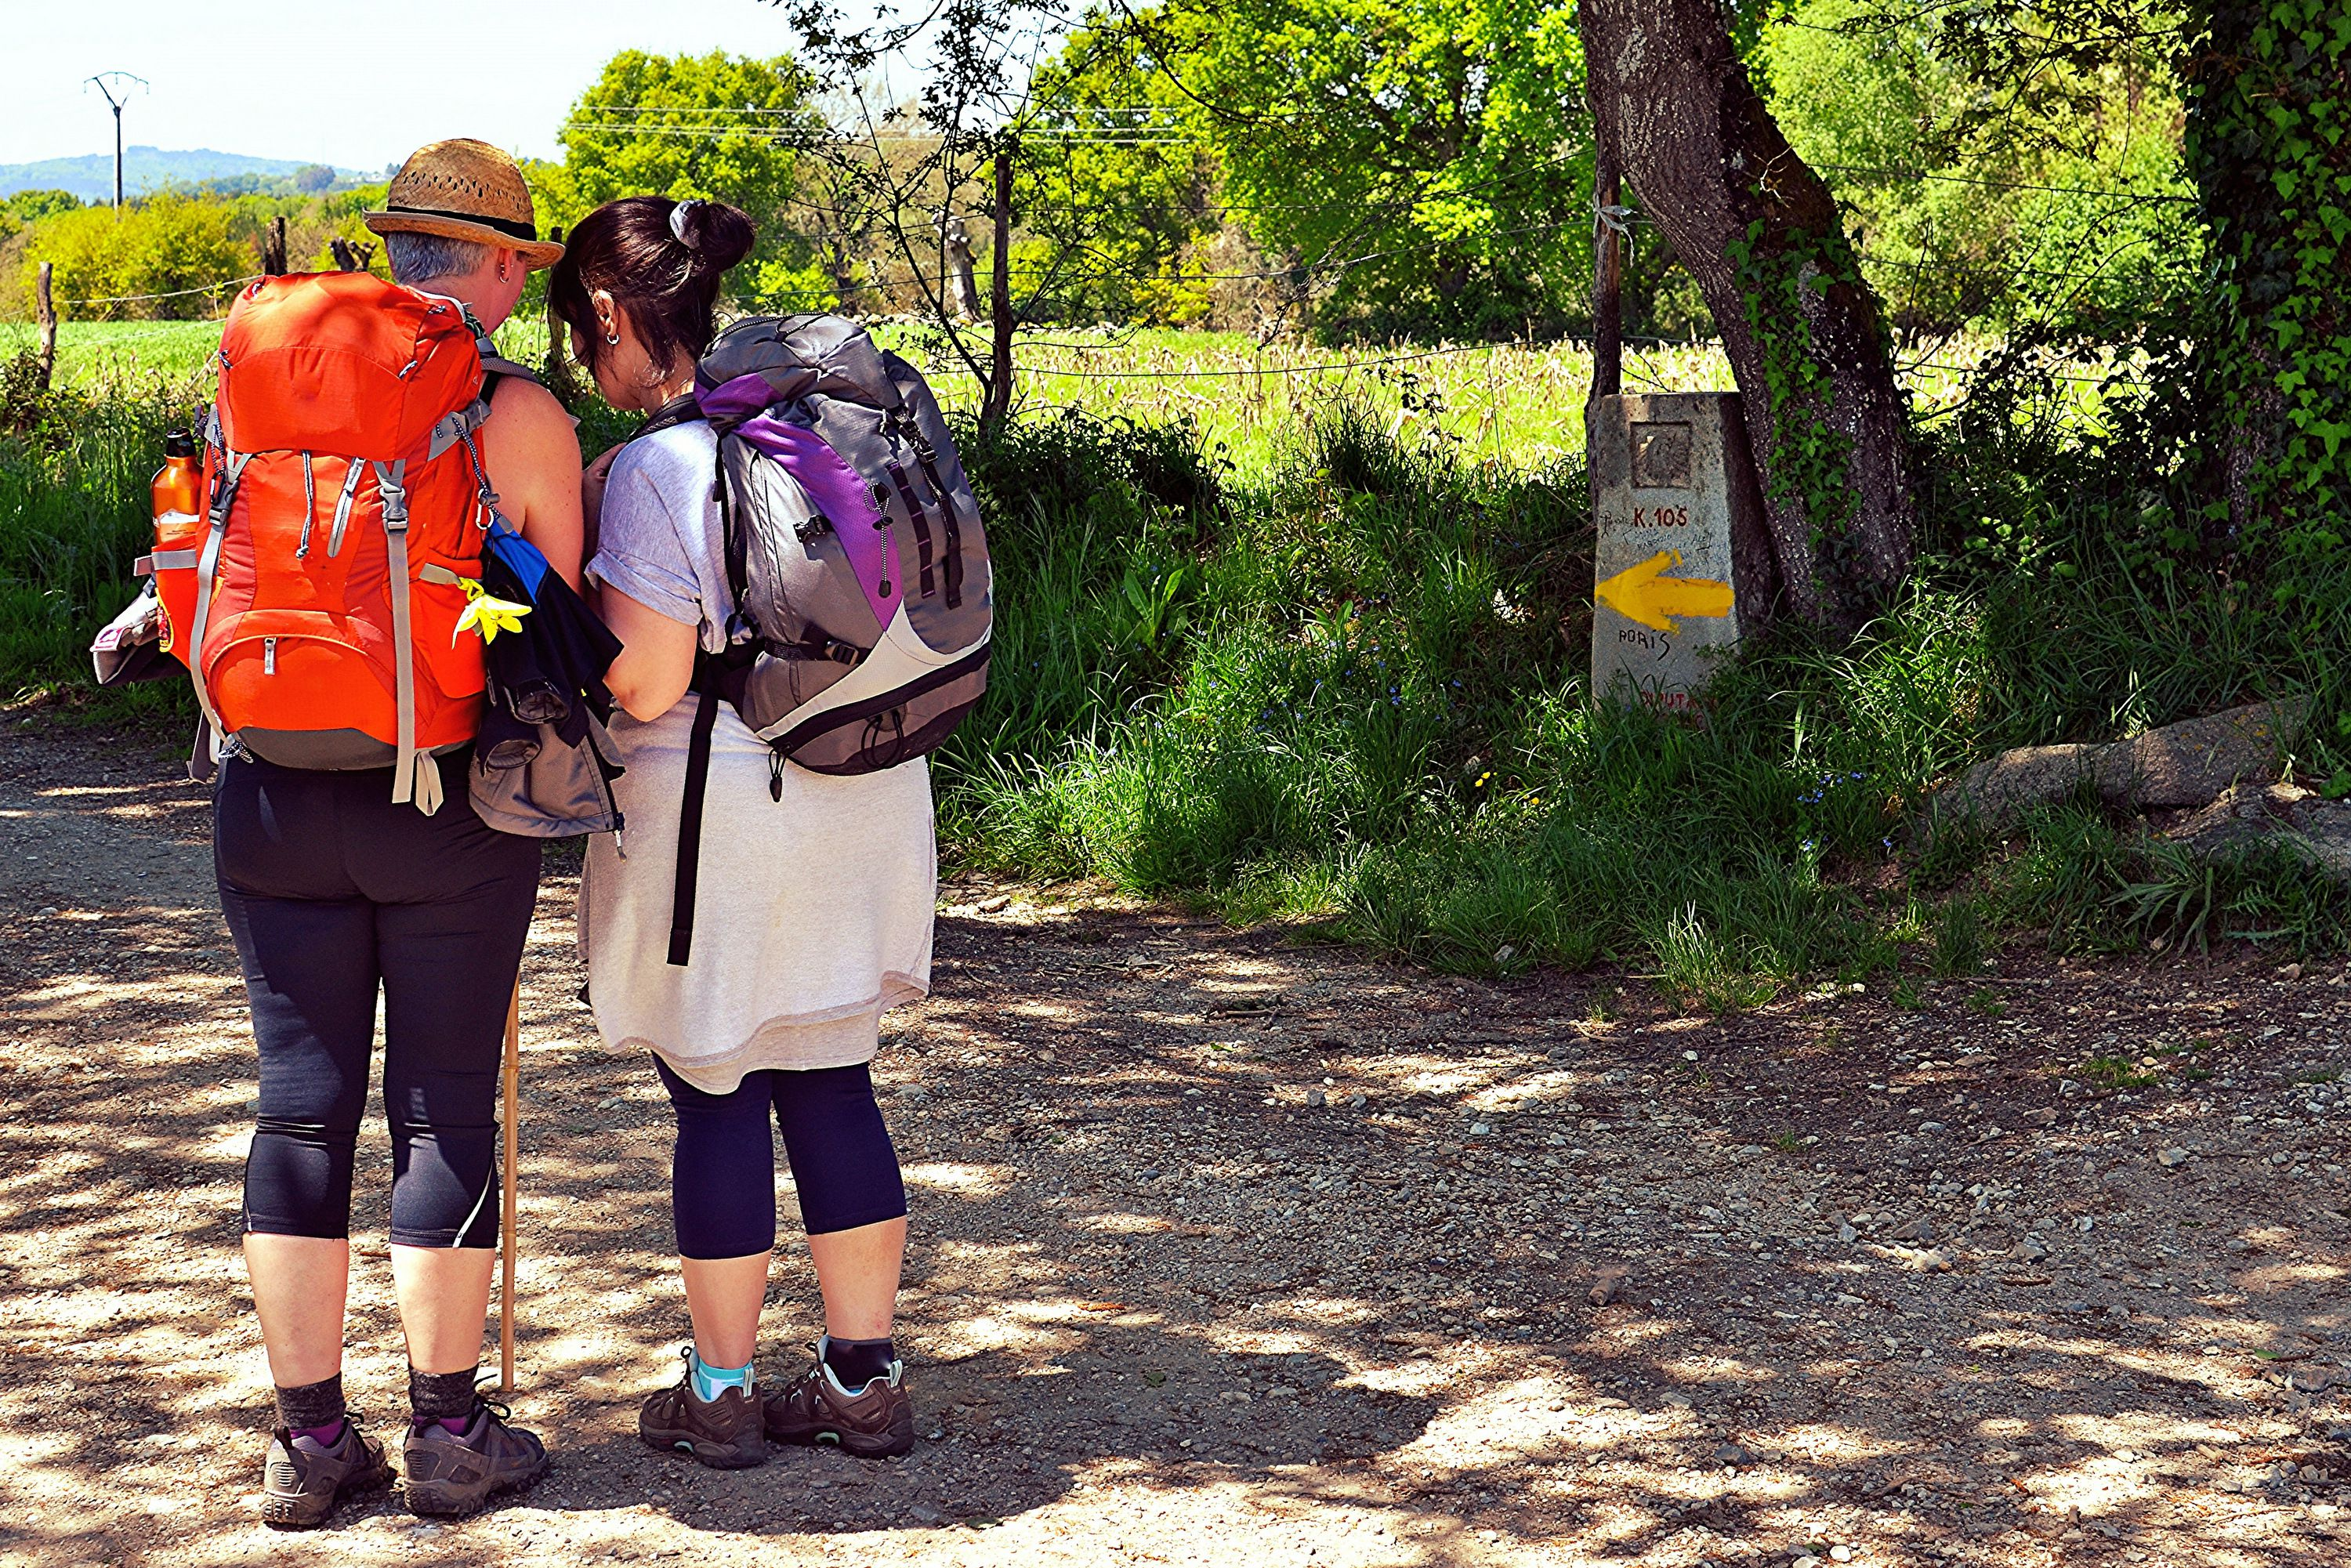 Walkers With Packs on the Camino de Santiago